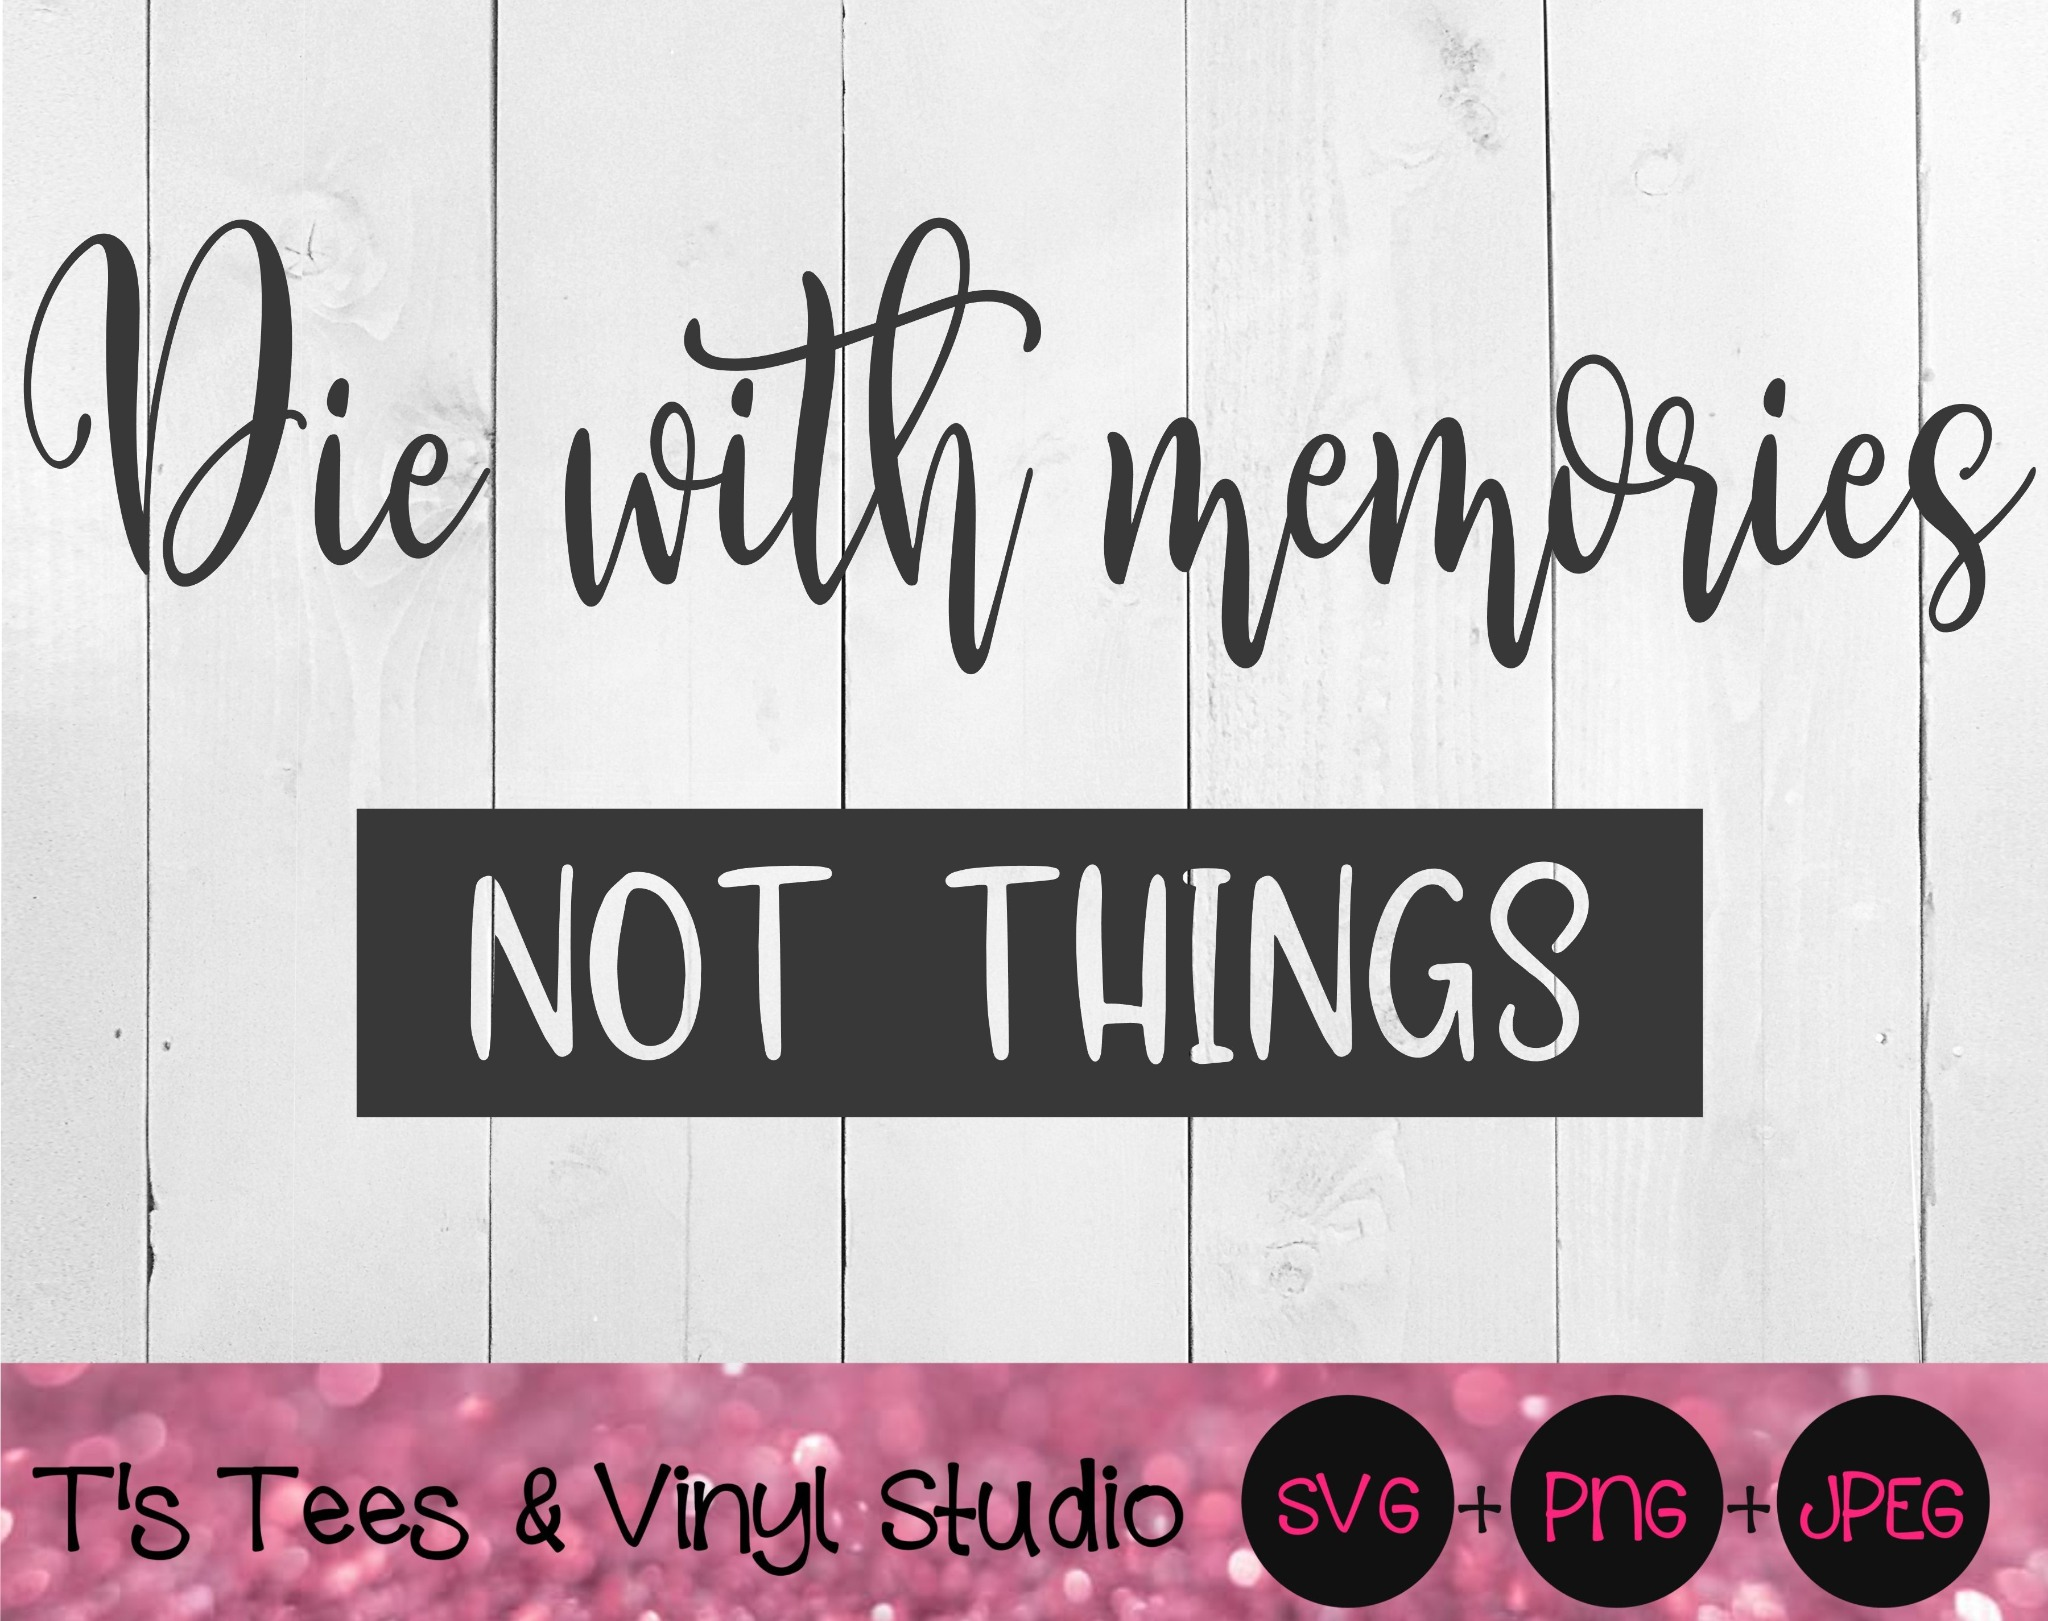 Die With Memories, Not Things Svg, Life's Short, Live Life, Don't Waste Moments, Make Memories, YOLO